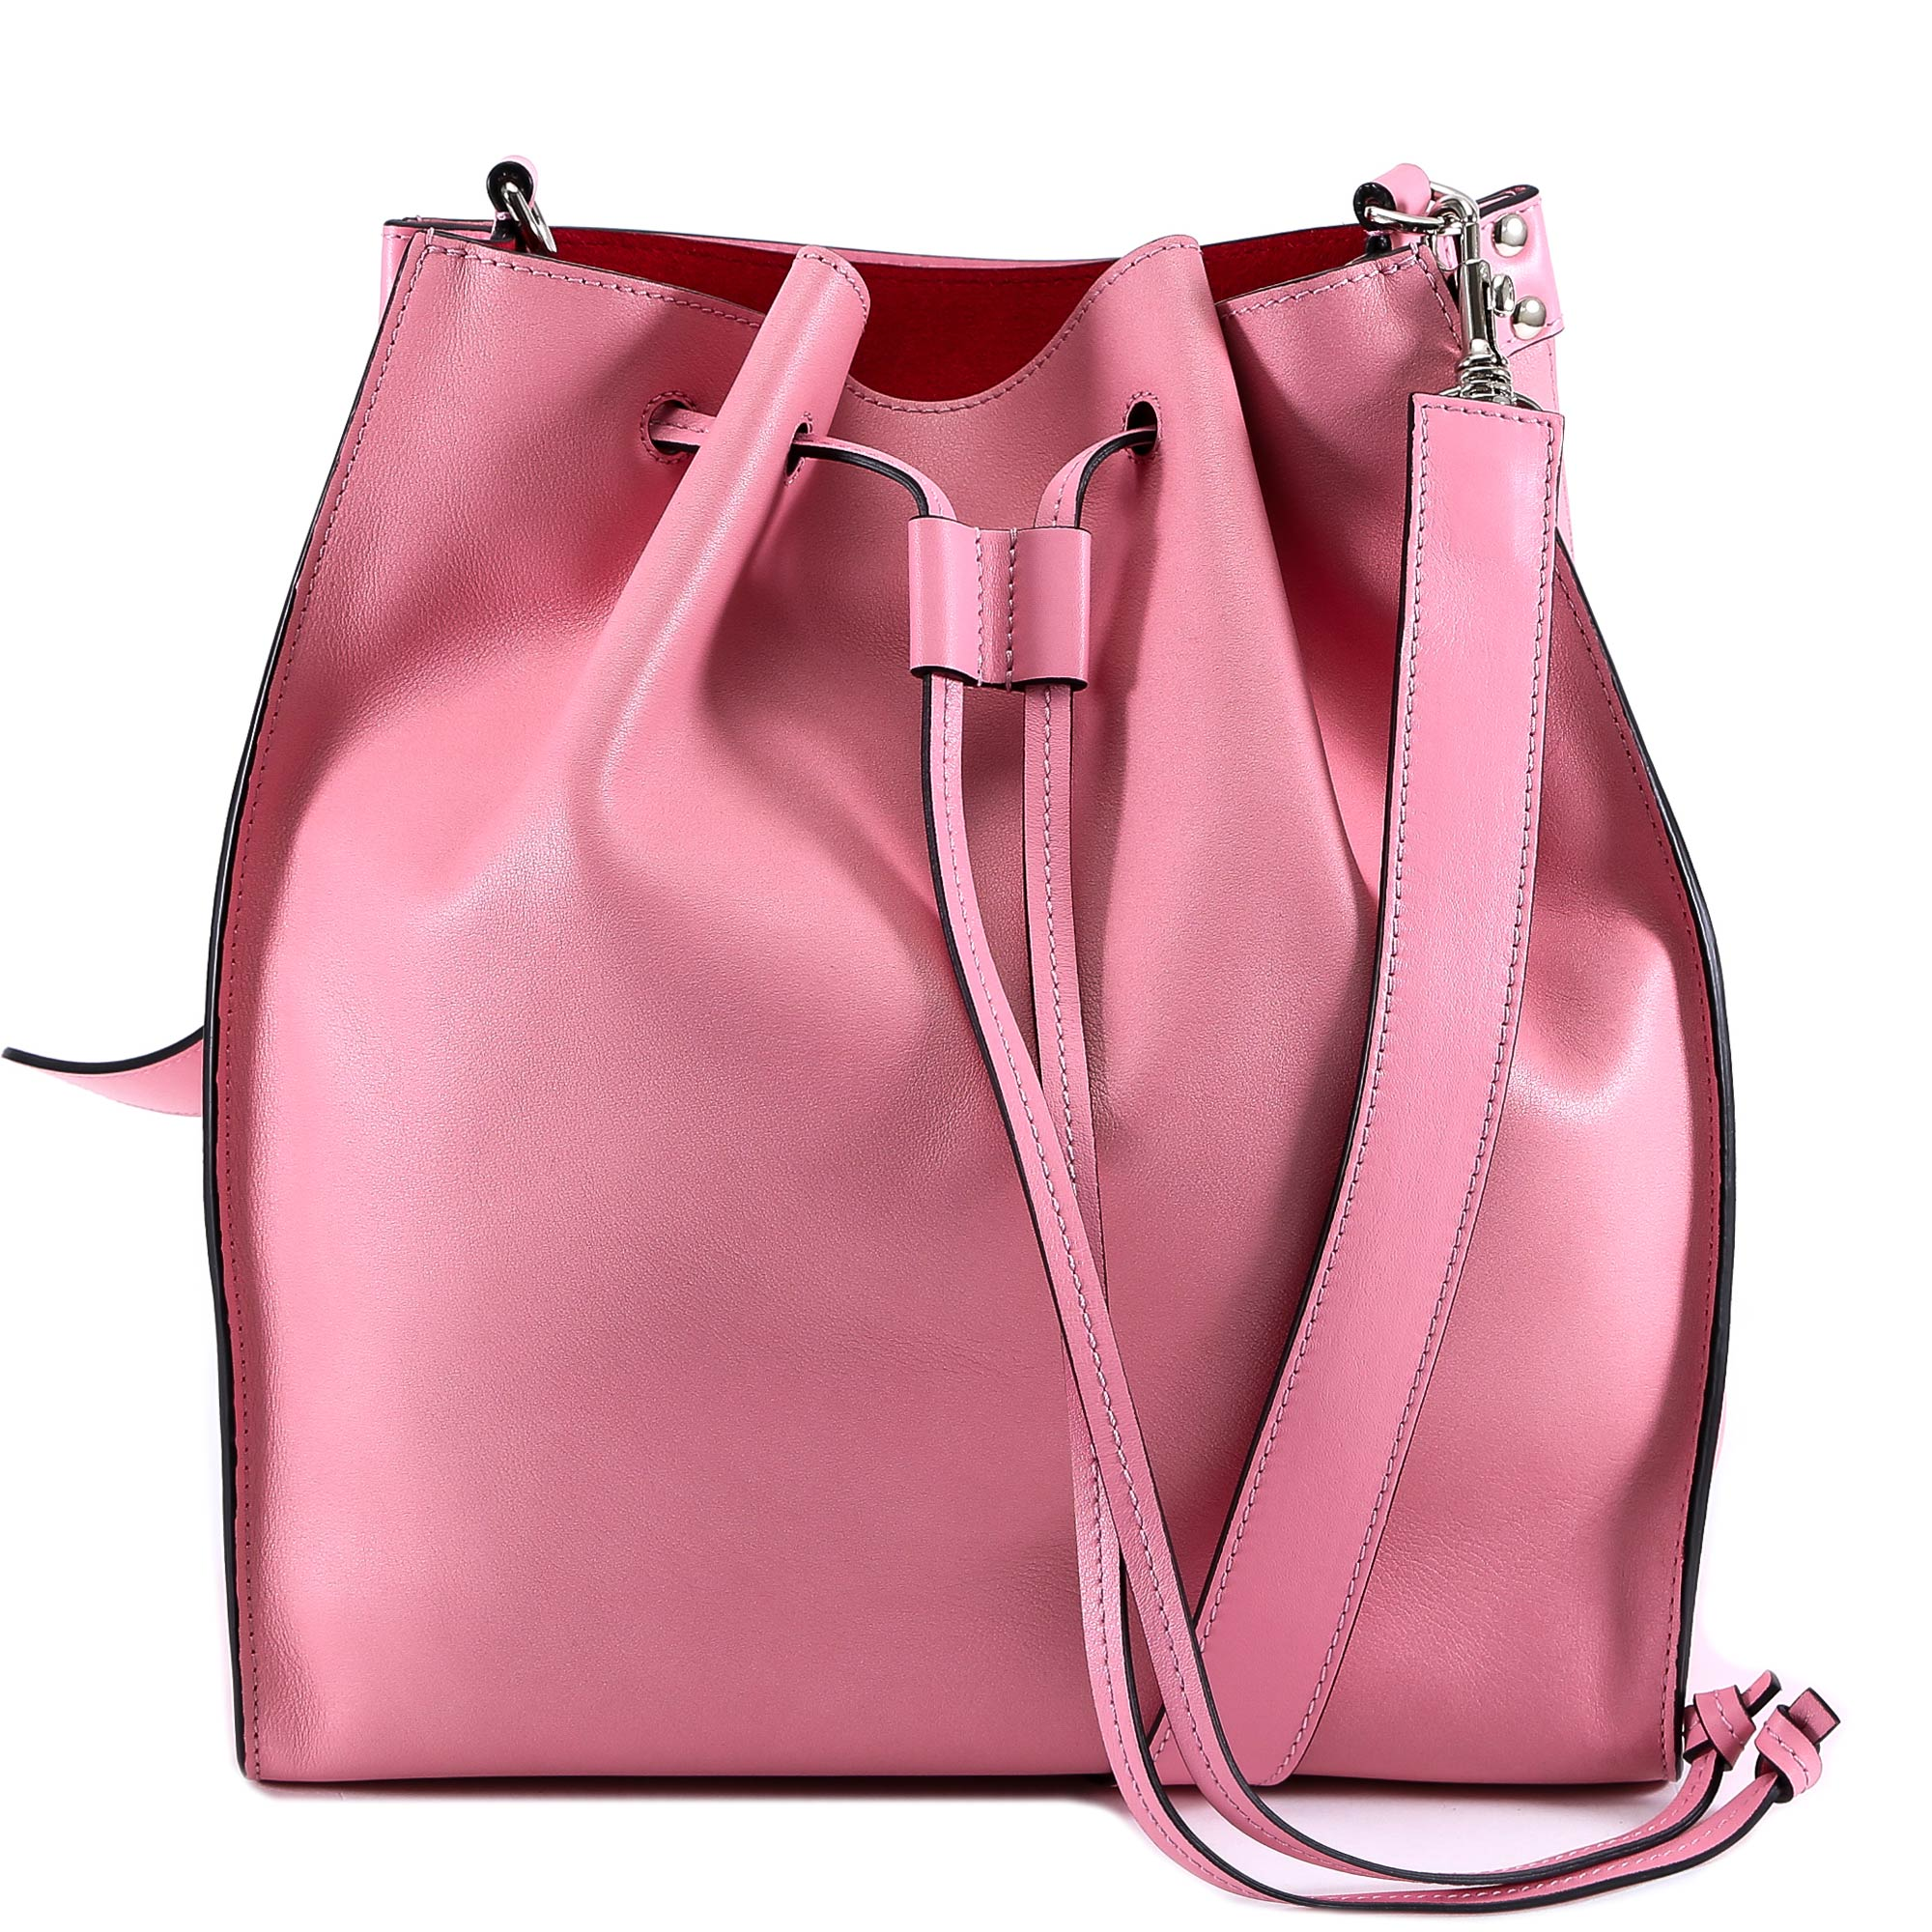 JW ANDERSON DRAWSTRING SHOULDER BAG